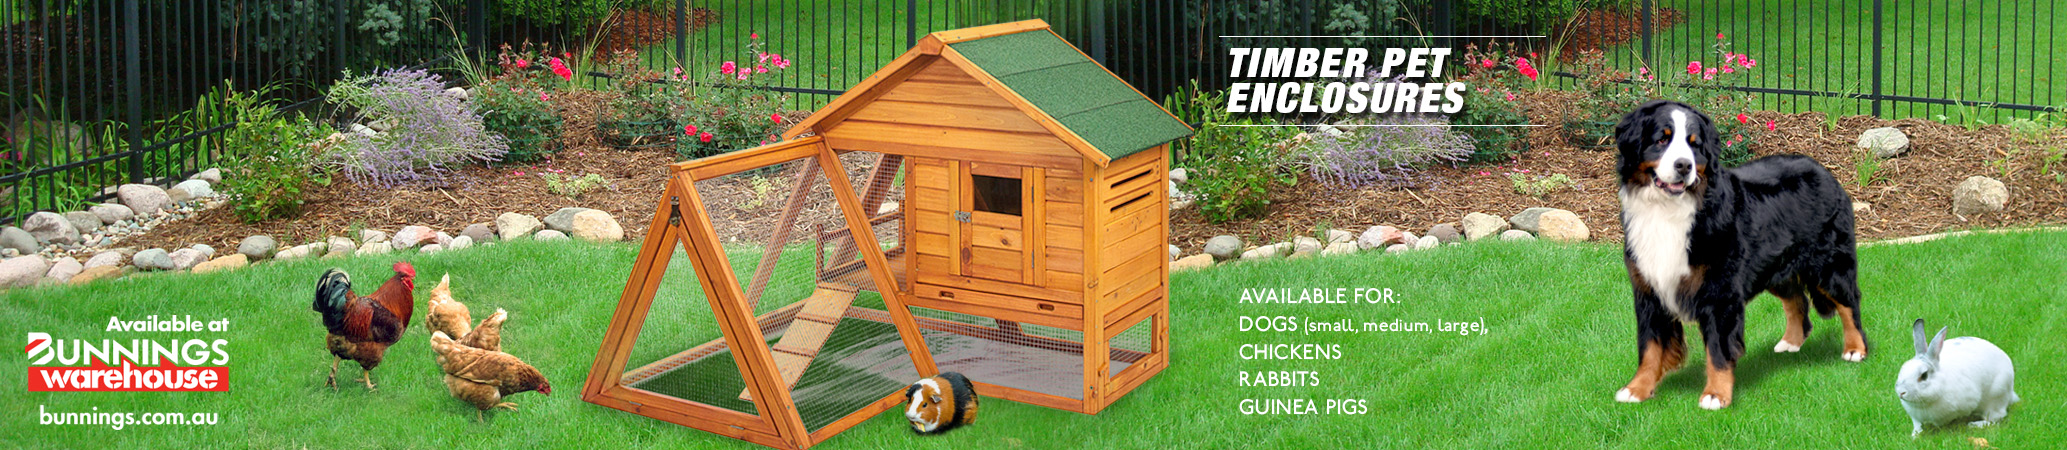 Timber Pet Enclosures